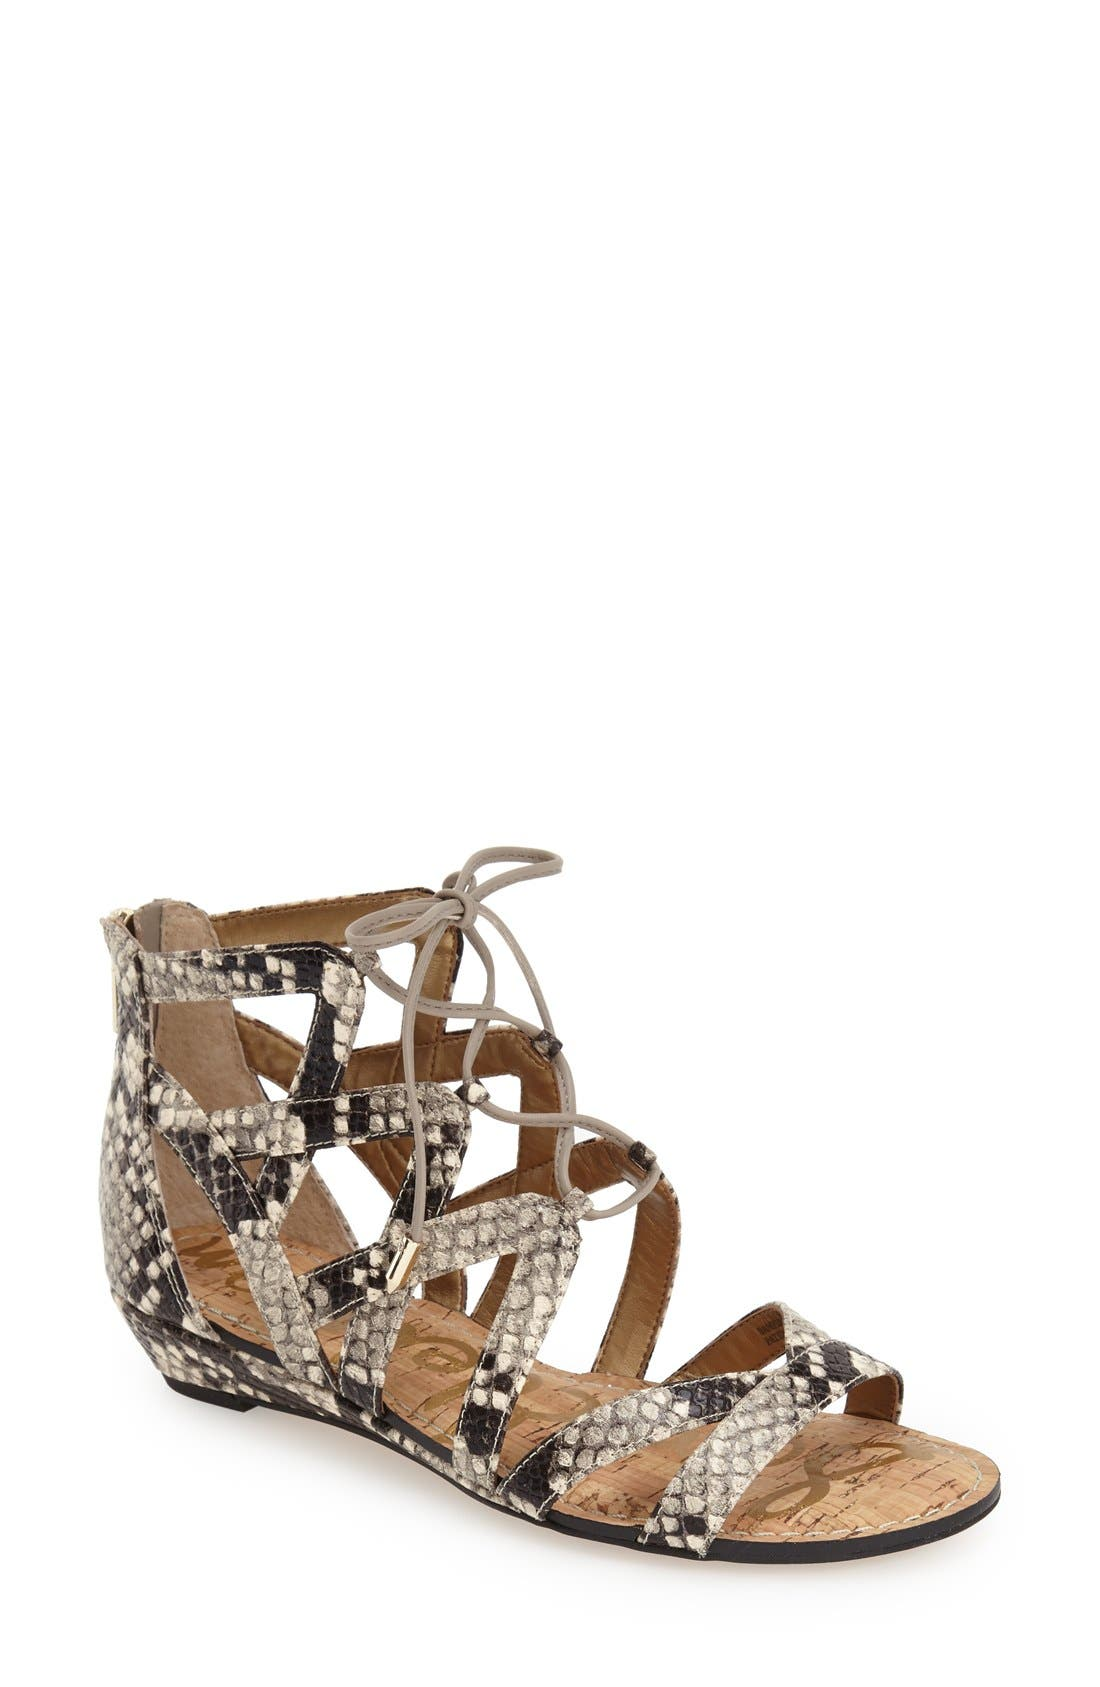 Alternate Image 1 Selected - Sam Edelman 'Dawson' Ghillie Sandal (Women)